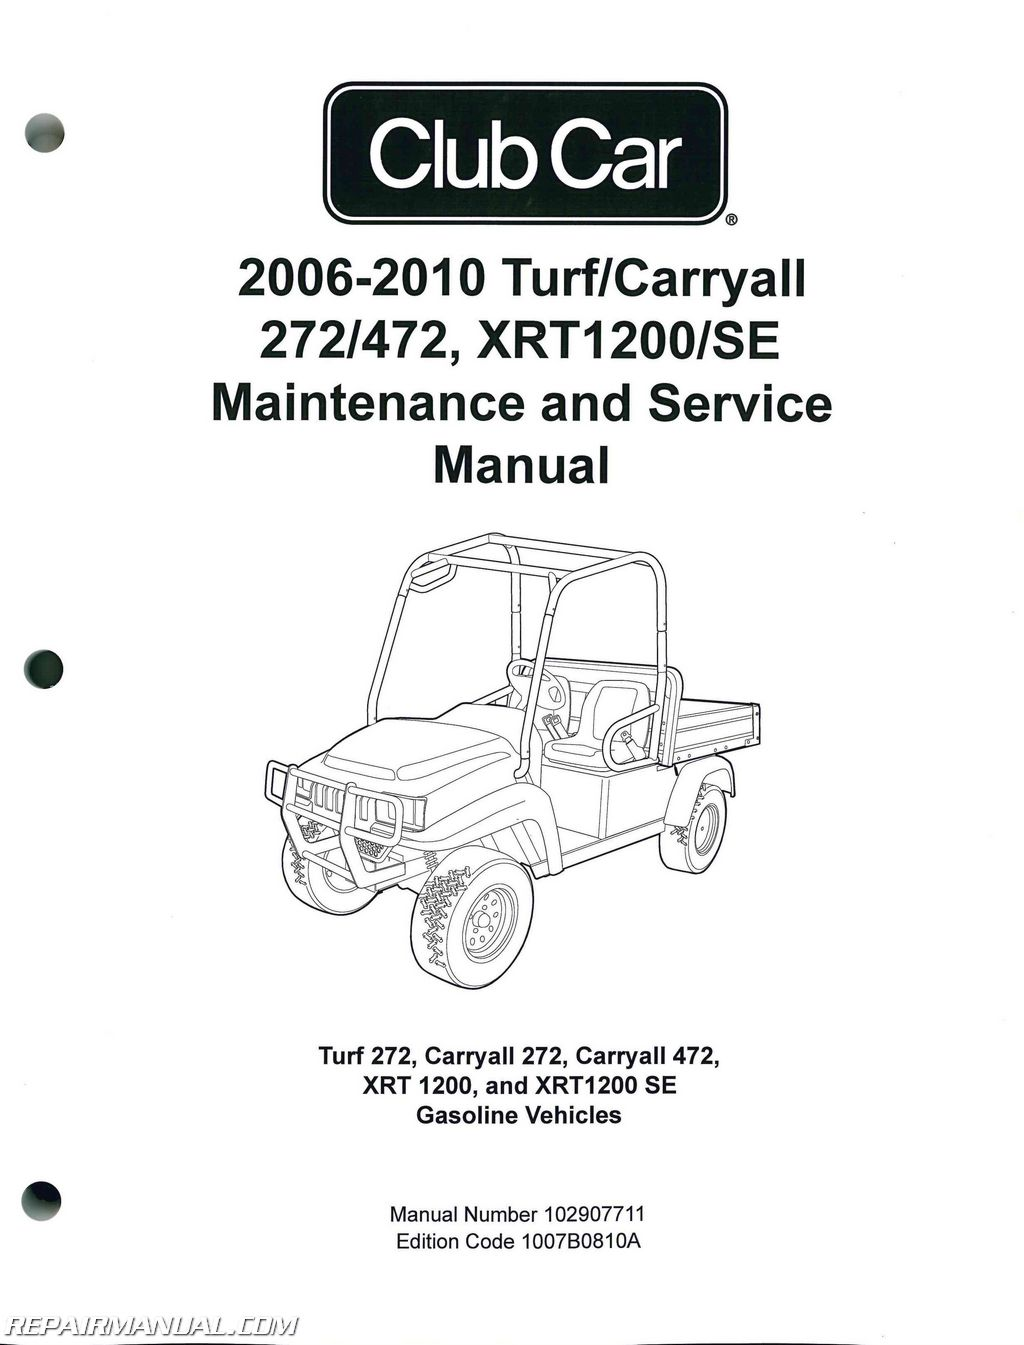 club car carry all 2 wiring diagram with Official 2006 2010 Club Car Turf Carryall 272 472 Xrt1200 Se Turf Se Gas Service Manual 102907711 on Carry All 2 Wiring Diagram additionally 652 likewise Carry All Club Car Ke Parts Diagram furthermore Club Car Carry All Parts Diagram furthermore Subaru Ex40 Engine Parts.